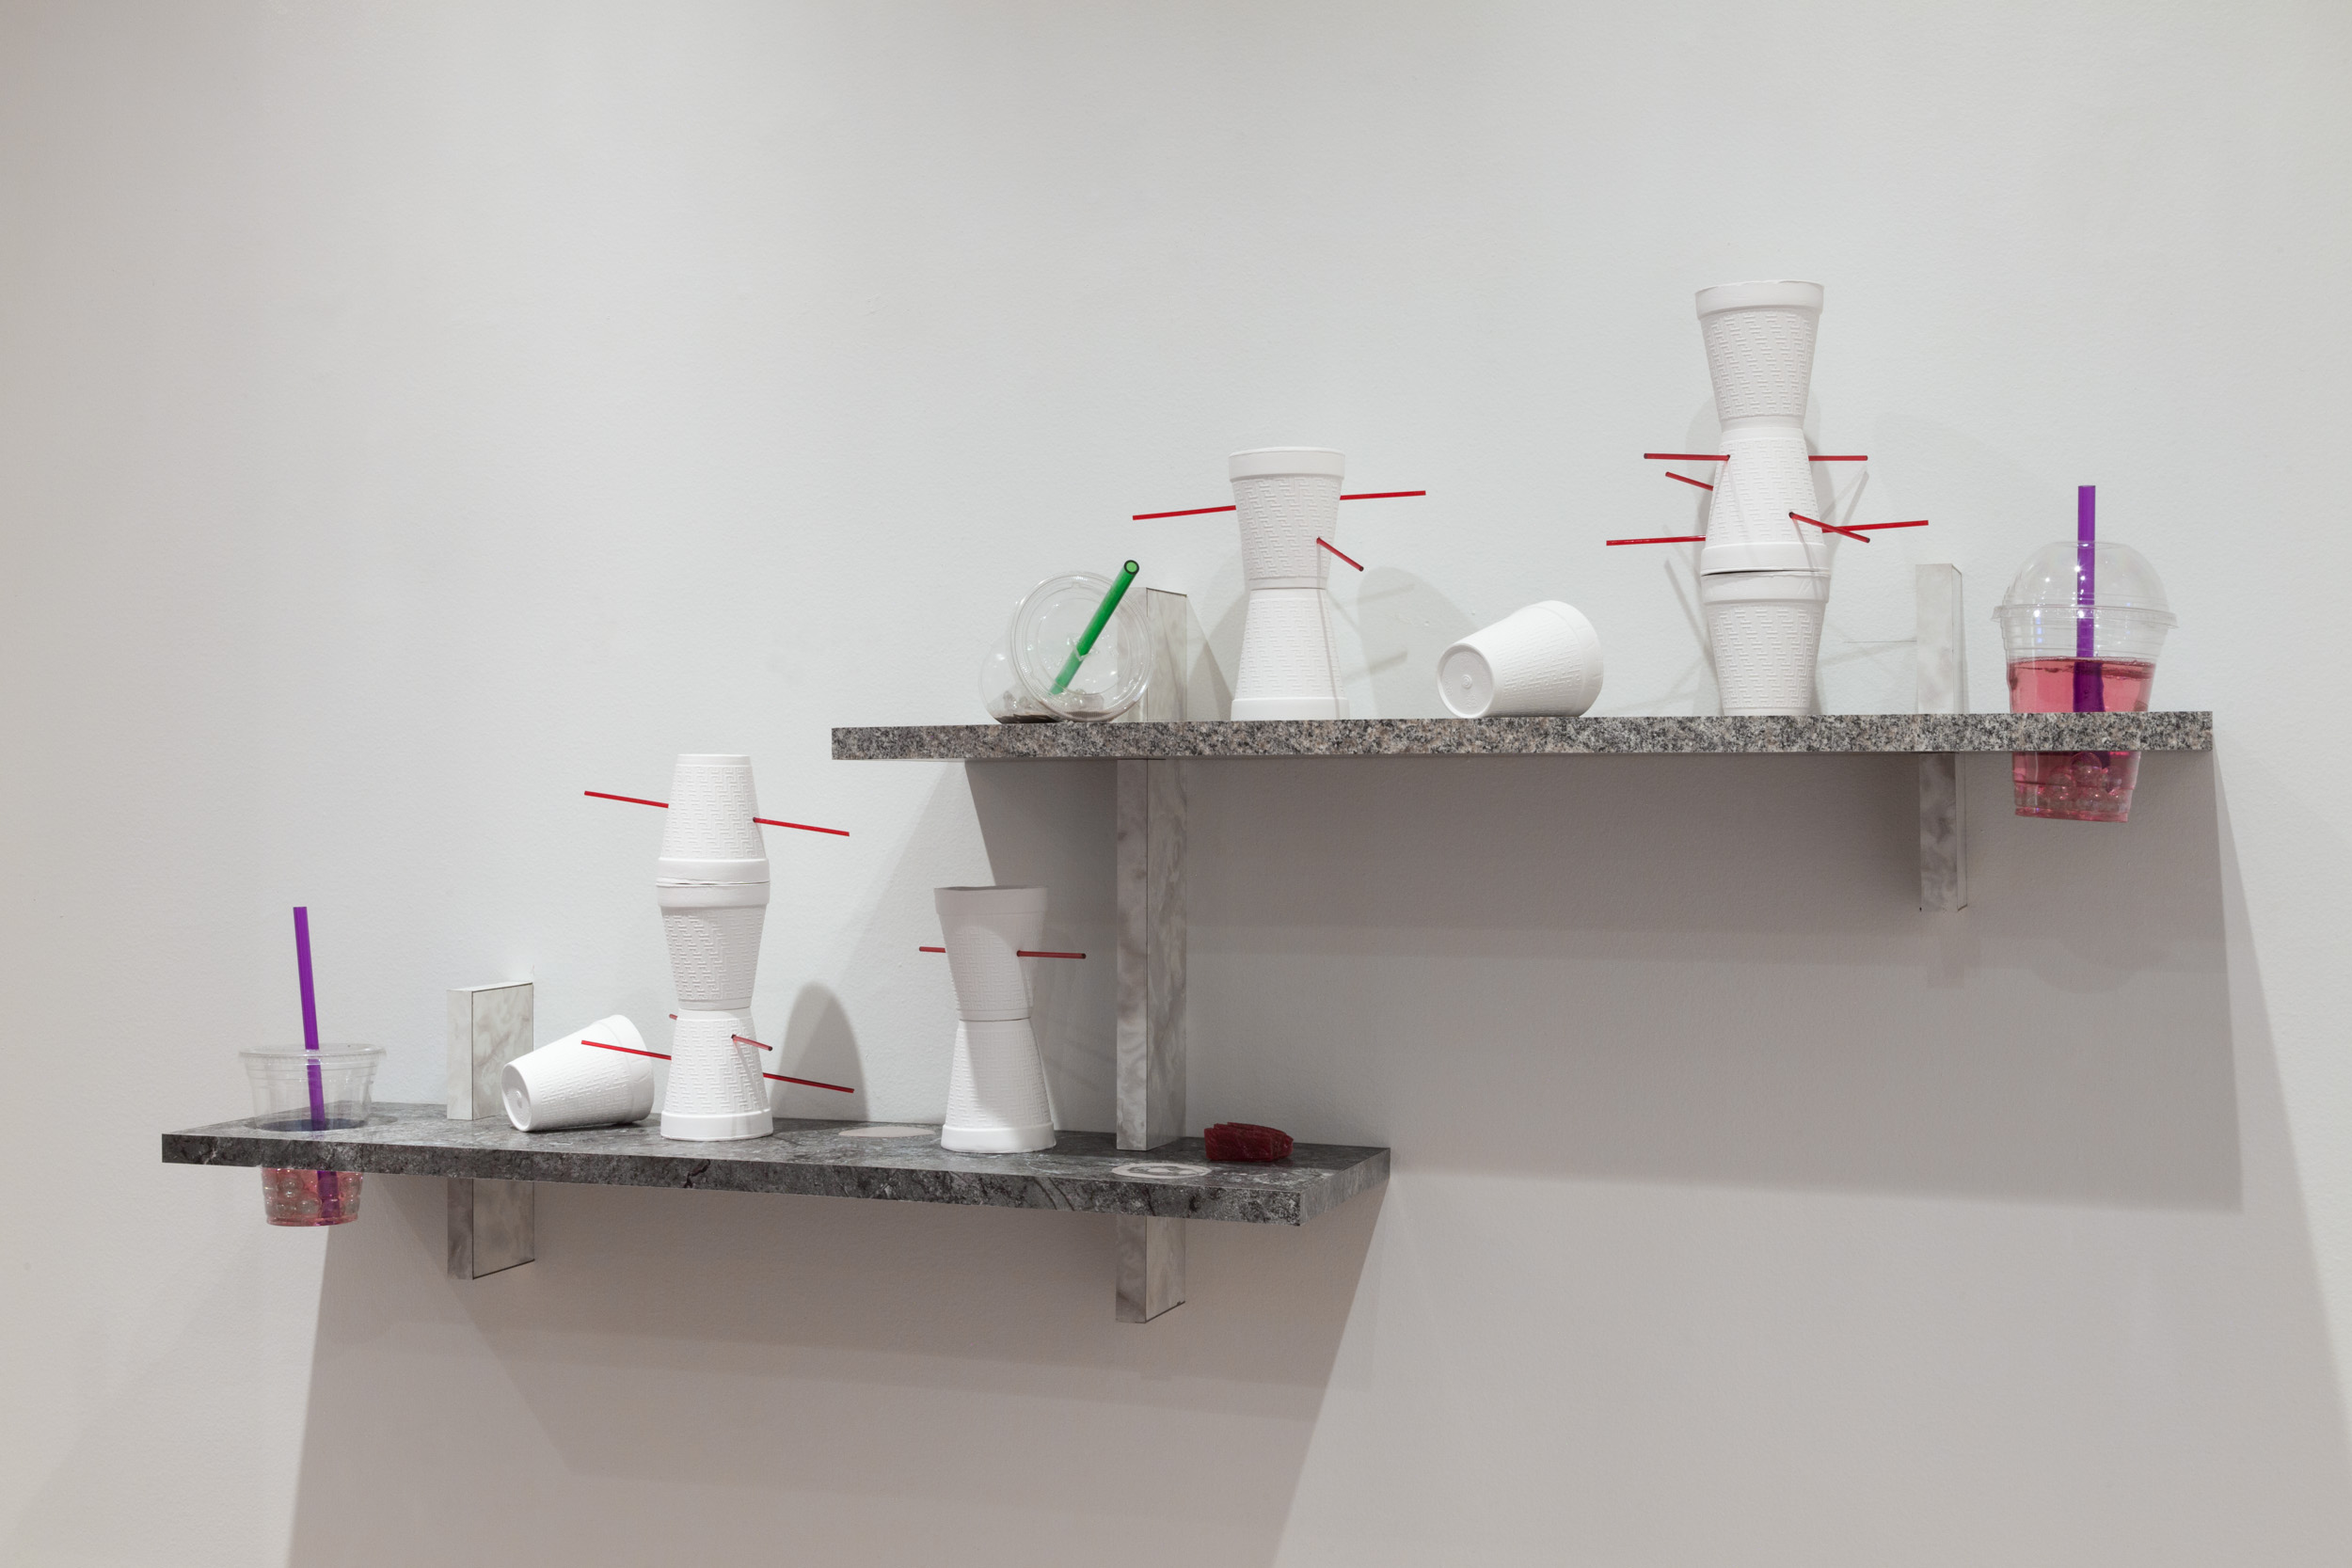 Lea Cetera   Sycophant's Lament , 2018 Formica, plywood, porcelain, acrylic, resin, plastic, glass, 53 x 8.125 x 26 inches overall